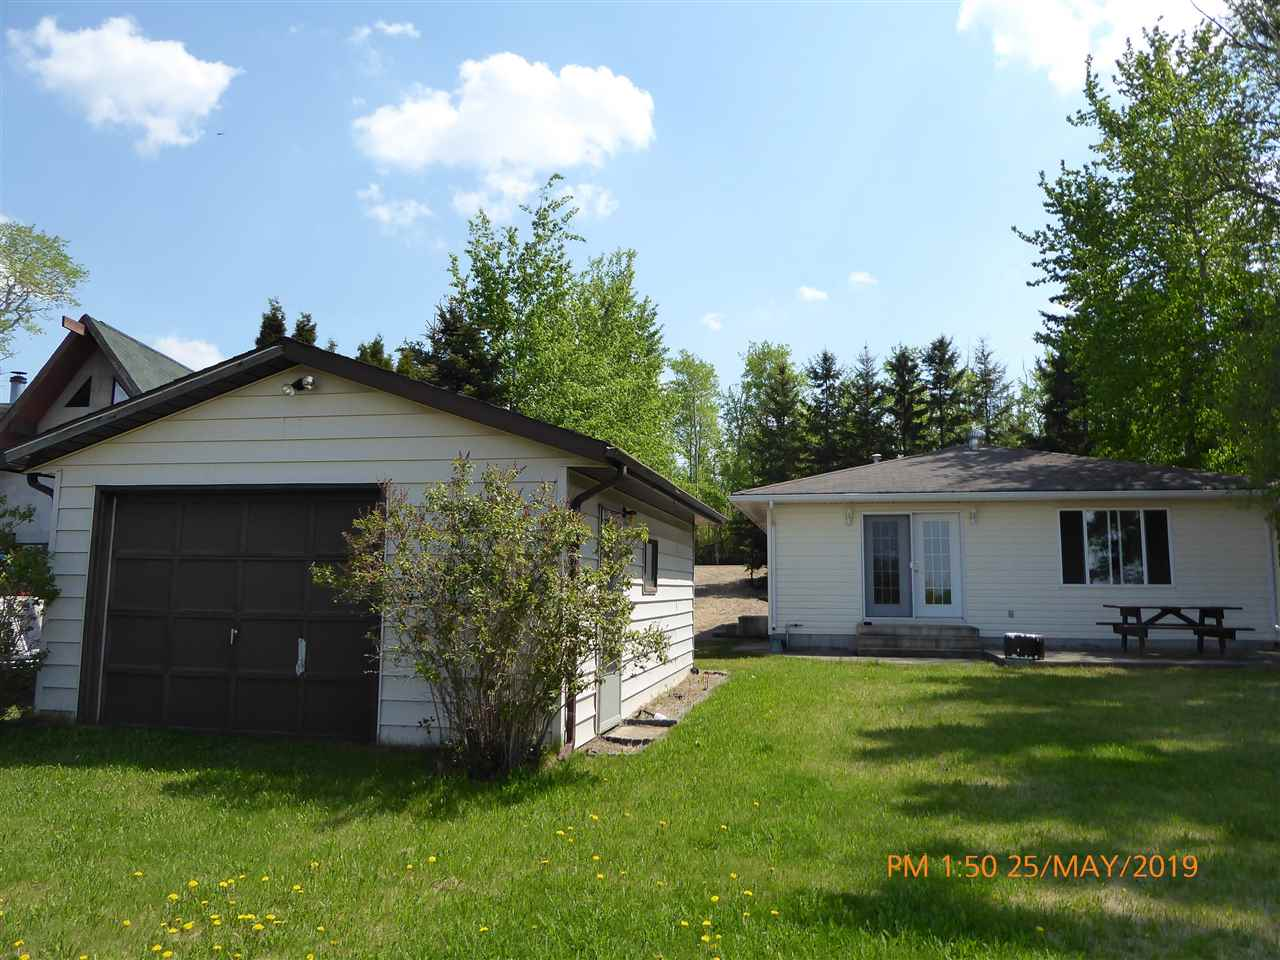 ! **$299,900** - Incredible Value at Hastings Lake! Yes, 'Live at the Lake', out in the Country, where 'the deer and the moose and the pelicans play'. So, at Hastings Lake, a mere 24 paved minutes East of Edmonton and Sherwood Park, there is this immaculate 1078 Sq Ft 3-Bedroom Lakeside Bungalow awaiting new ownership. Built in 1998, this fine Home is Open Concept, with the Ktichen, Dining area and Living Room overlooking lakeside, with garden doors leading out to the patio with a lake view. Comes with 5 appliances and all house furnishings. Outside there is an Oversized Single Garage and a fully landscaped lot.  Ready to enjoy!